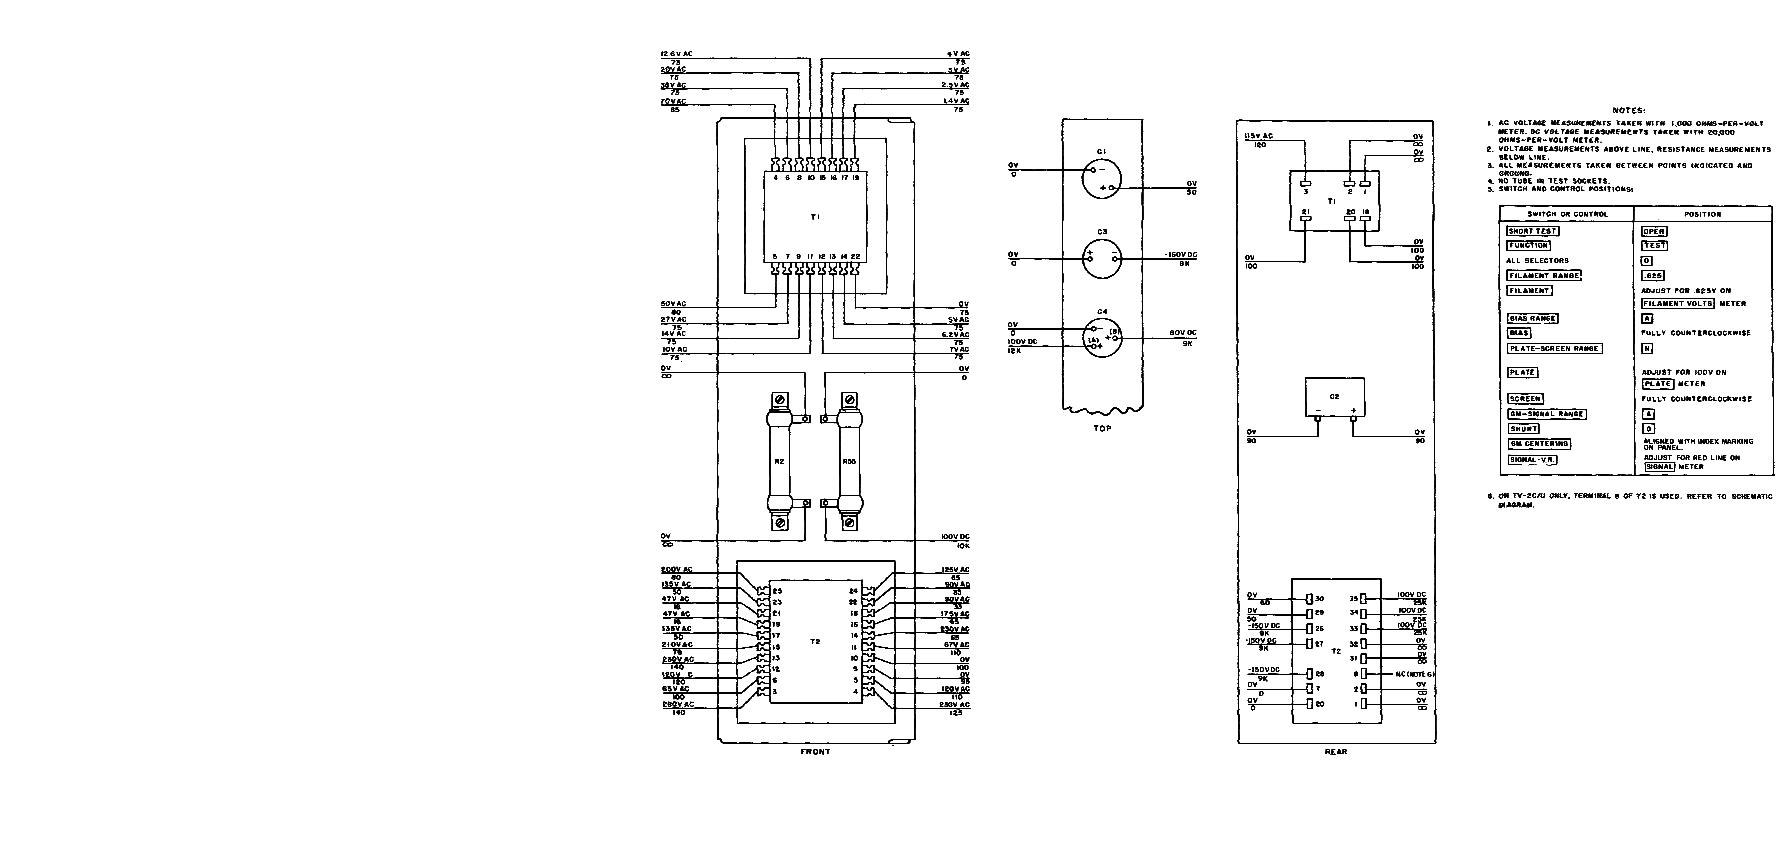 Figure 12 Chassis Voltage And Resistance Diagram